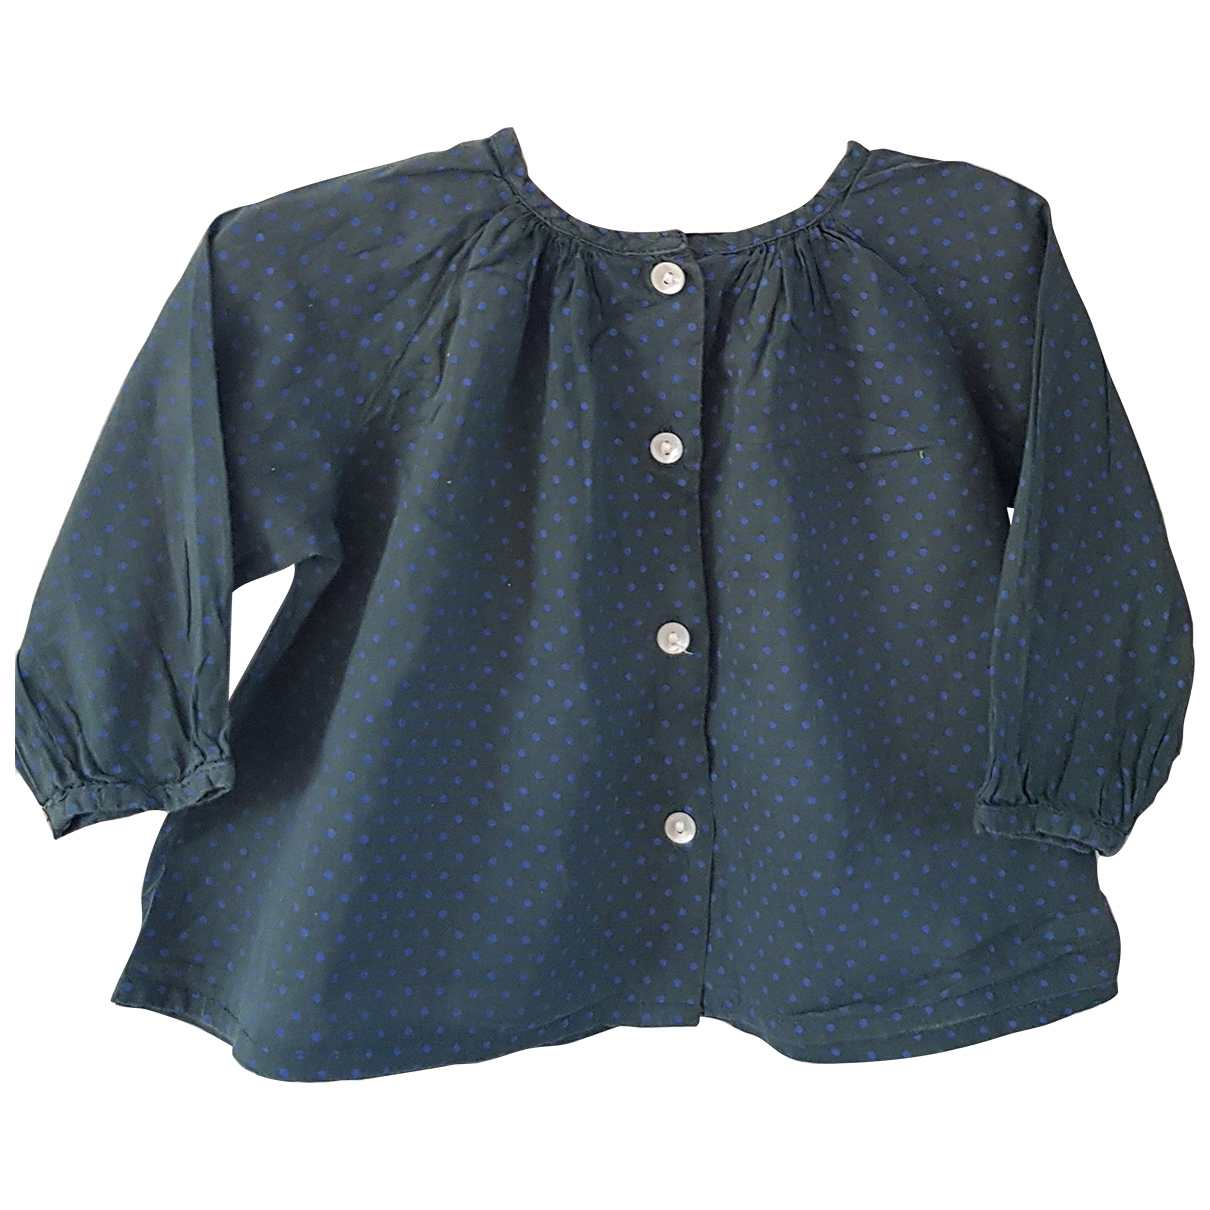 Bonton \N Green Cotton  top for Kids 6 months - up to 67cm FR